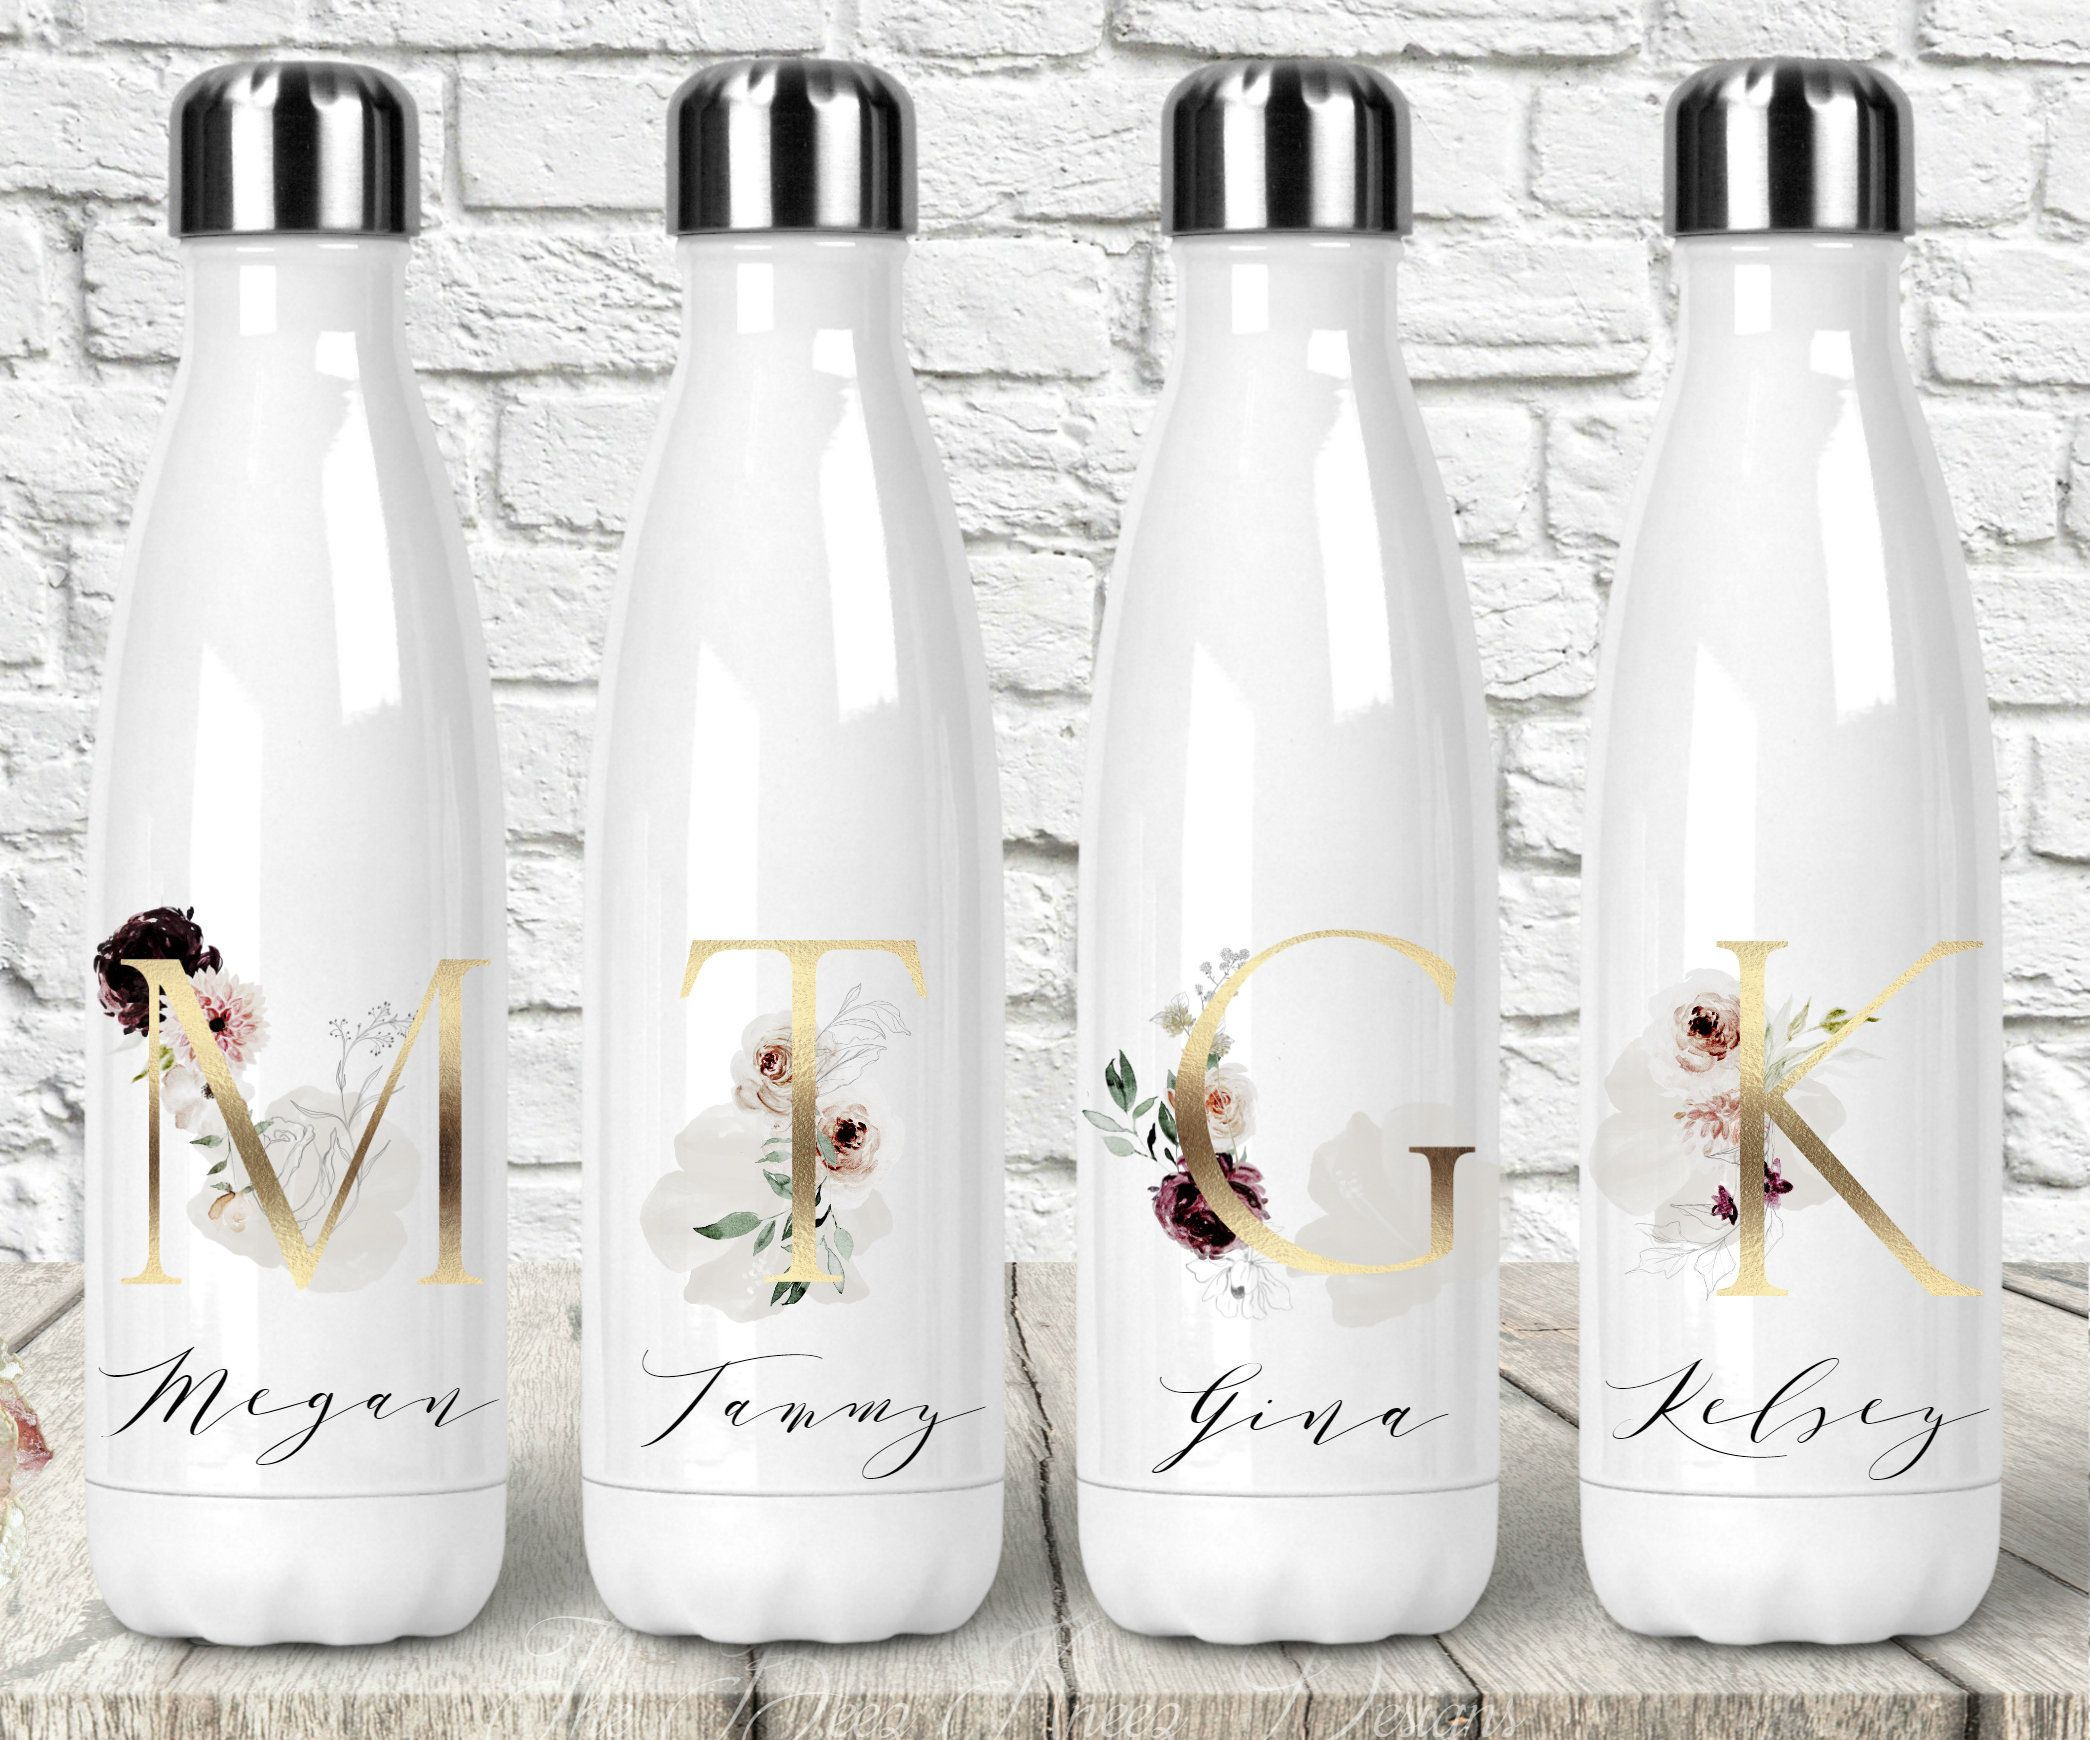 maid of honor bottle water bottle maid of honour bottle bridal party gifts Bridesmaid Bottle wedding party gift. bridesmaid